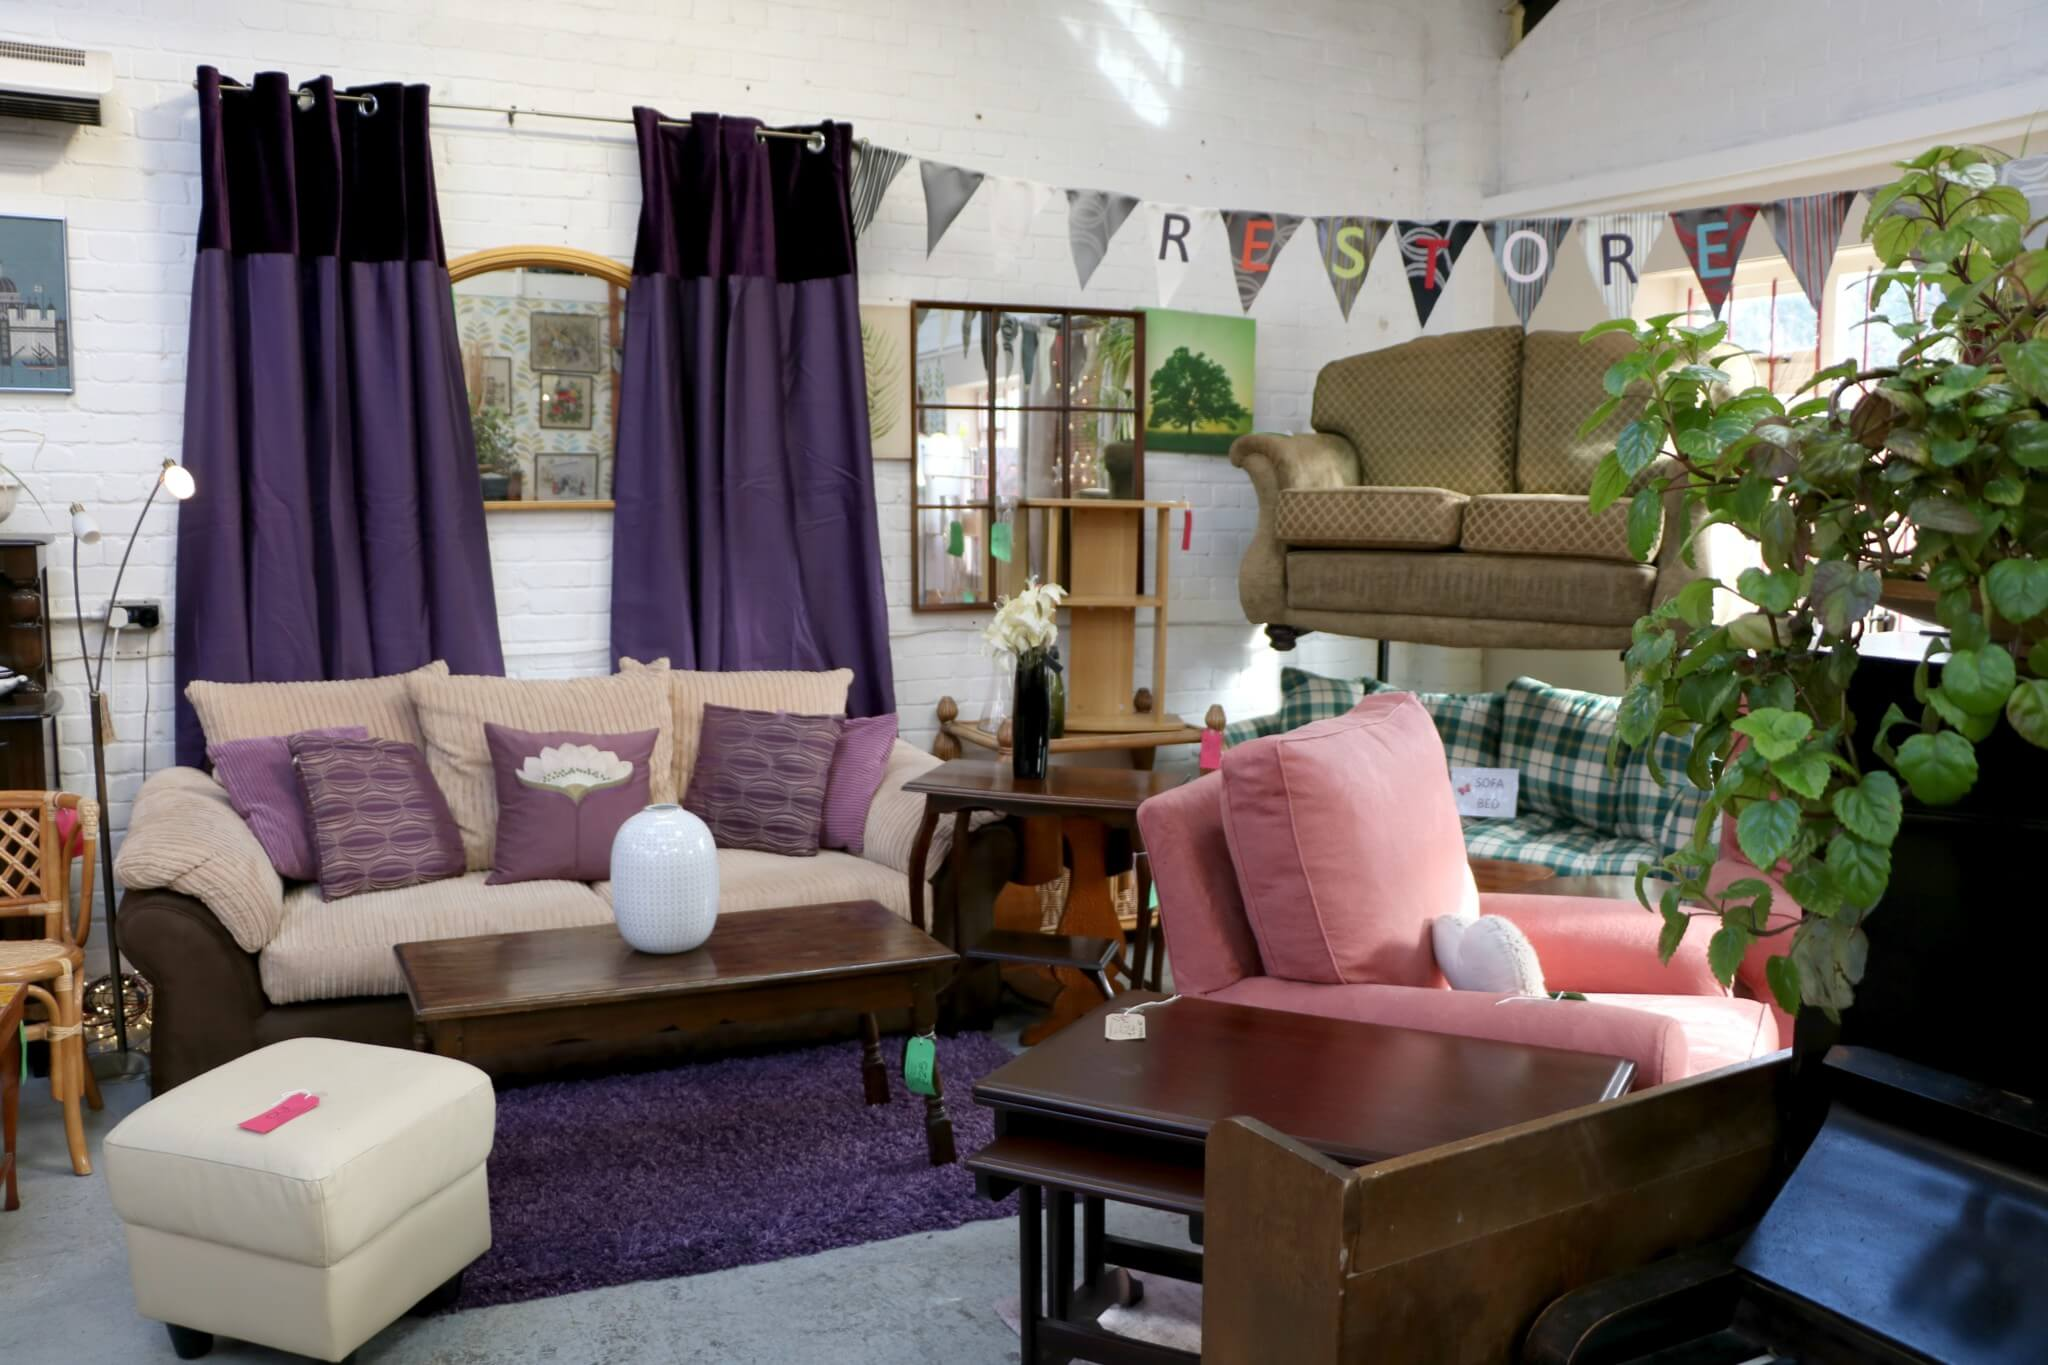 Dereham Furniture Store - interior